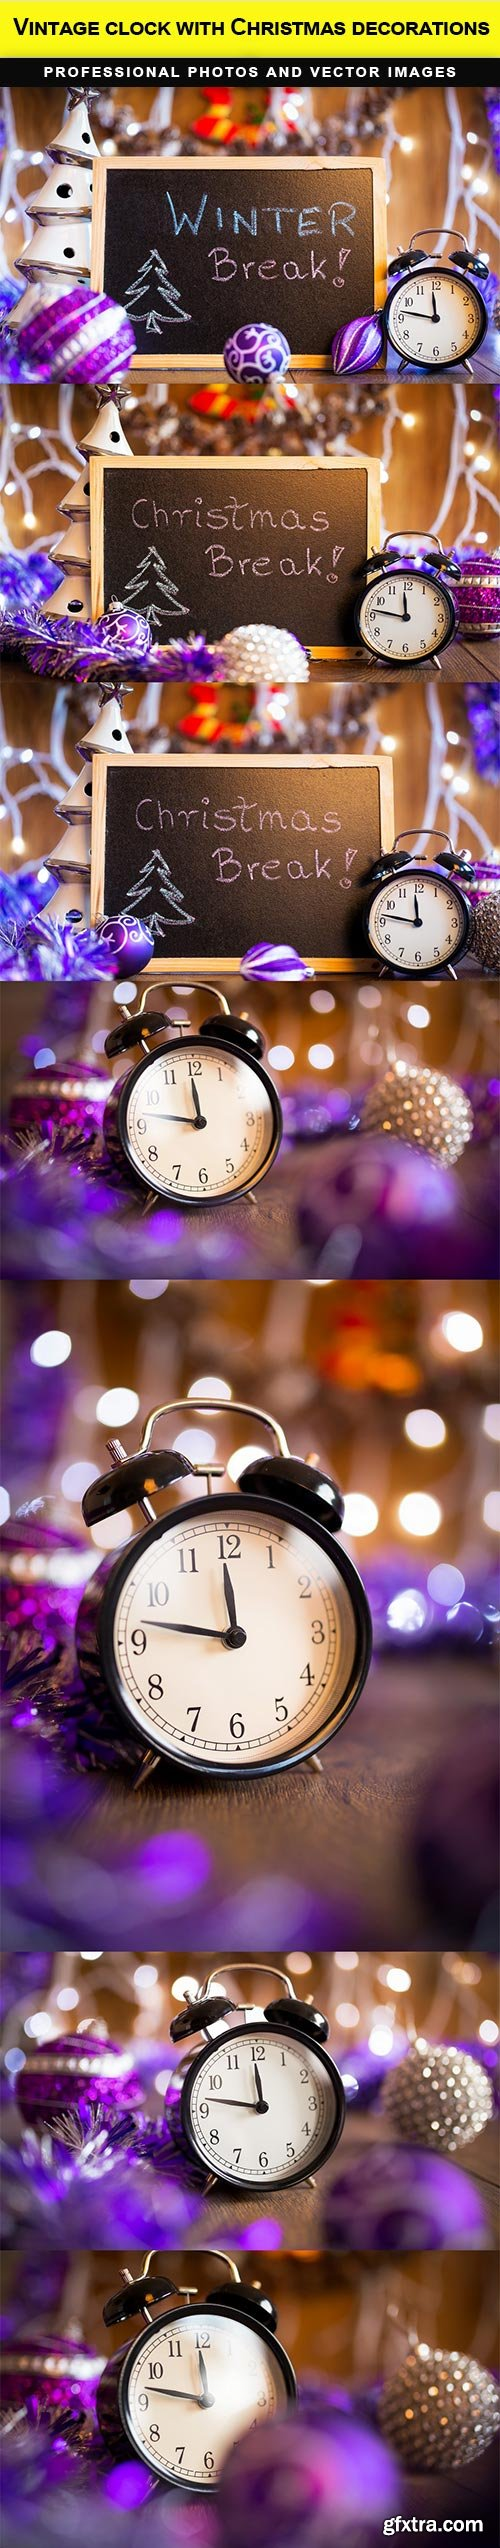 Vintage clock with Christmas decorations